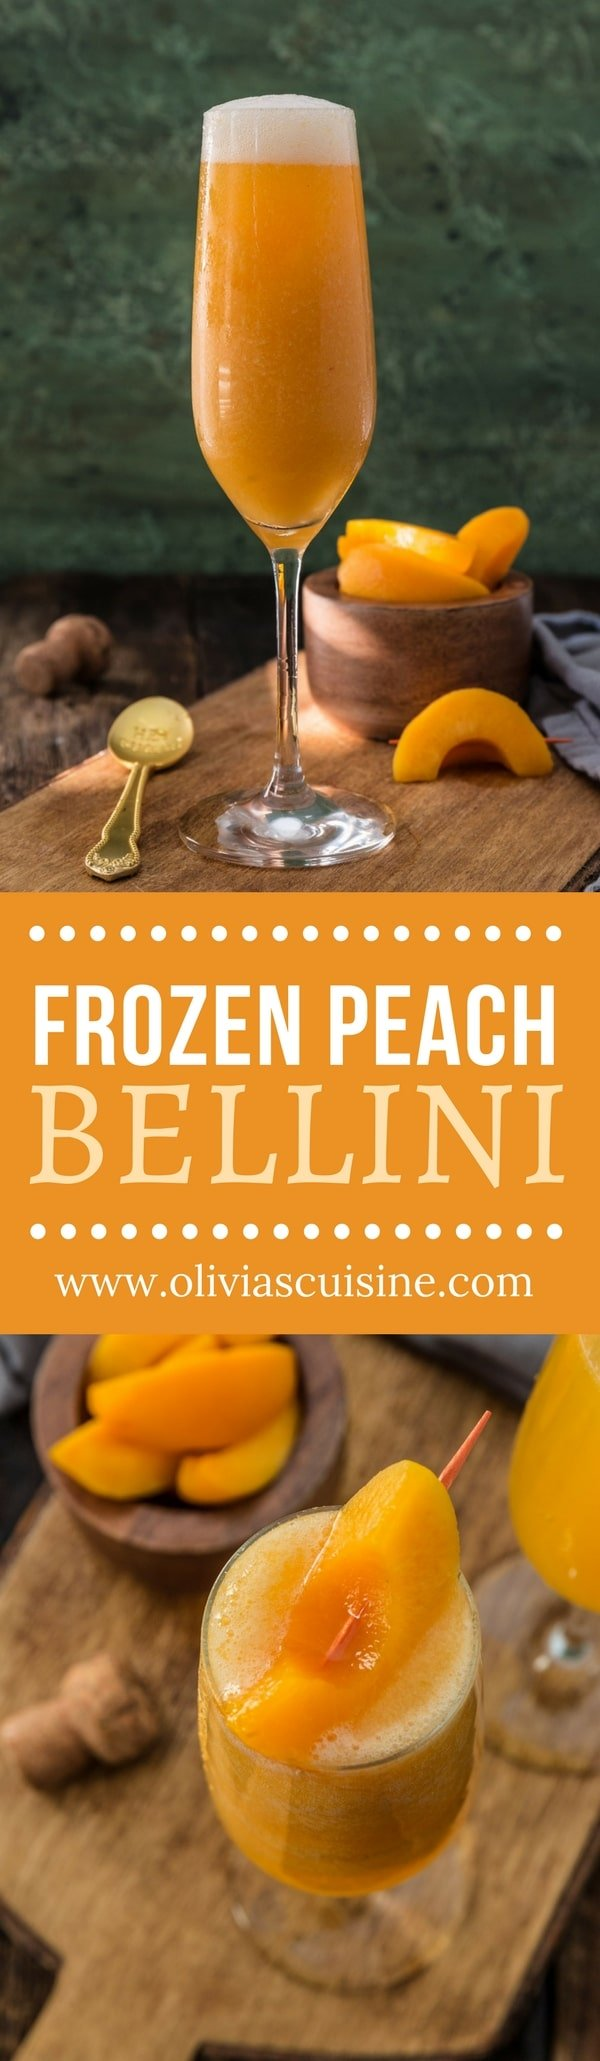 Frozen Peach Bellini | www.oliviascuisine.com | No need to wait until peach season! This Frozen Peach Bellini is made with frozen peaches and is just as delicious. Perfect to toast the New Year in grand style! (Recipe and food photography by @oliviascuisine.)